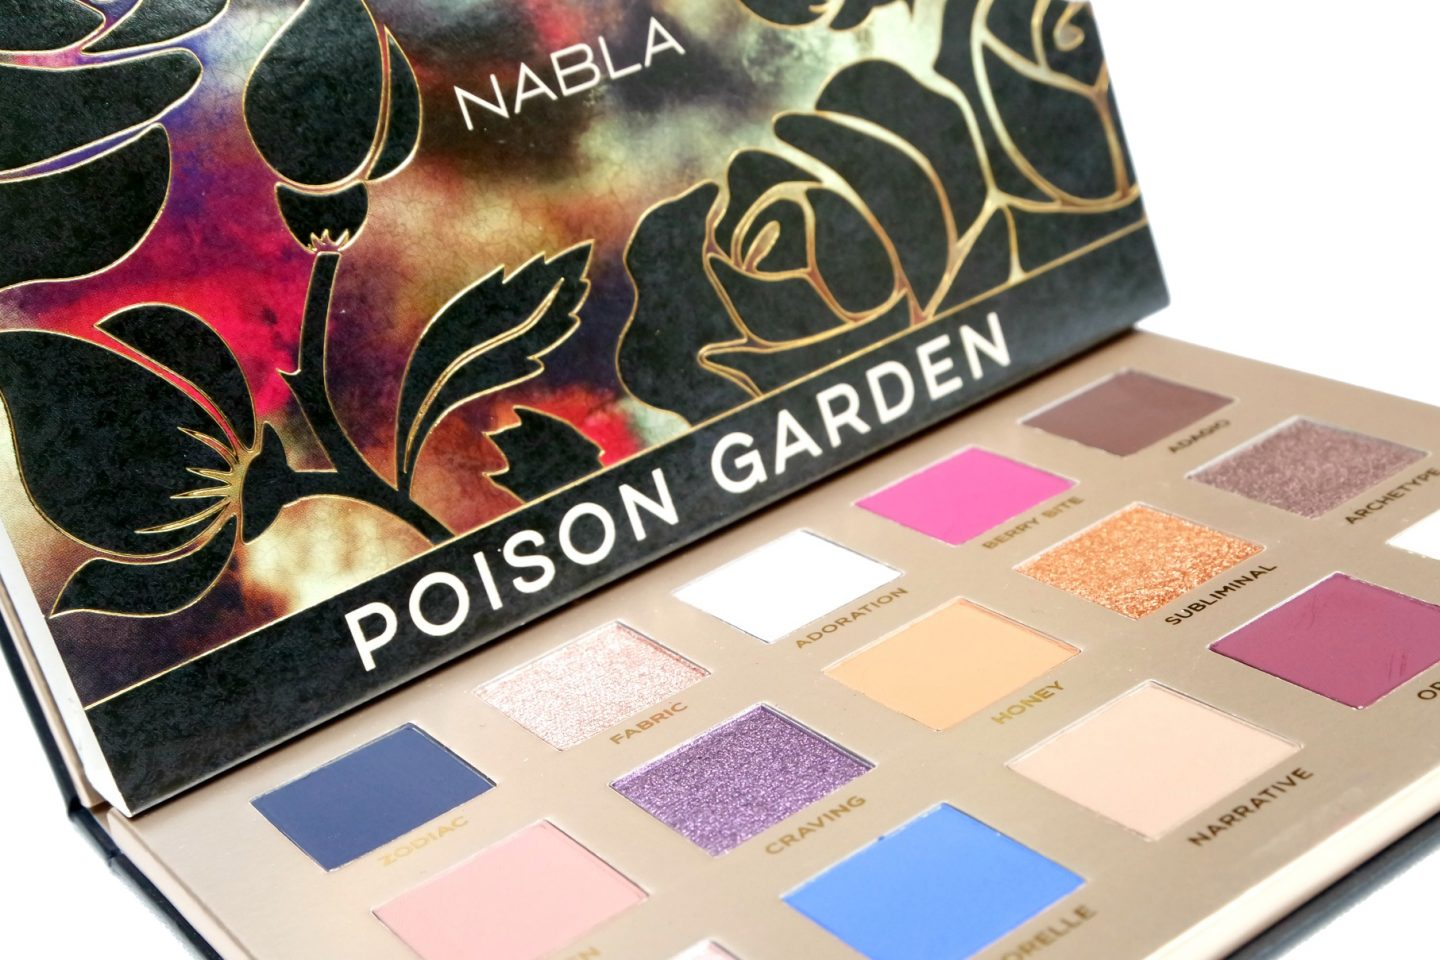 NABLA Poison Garden Palette Review